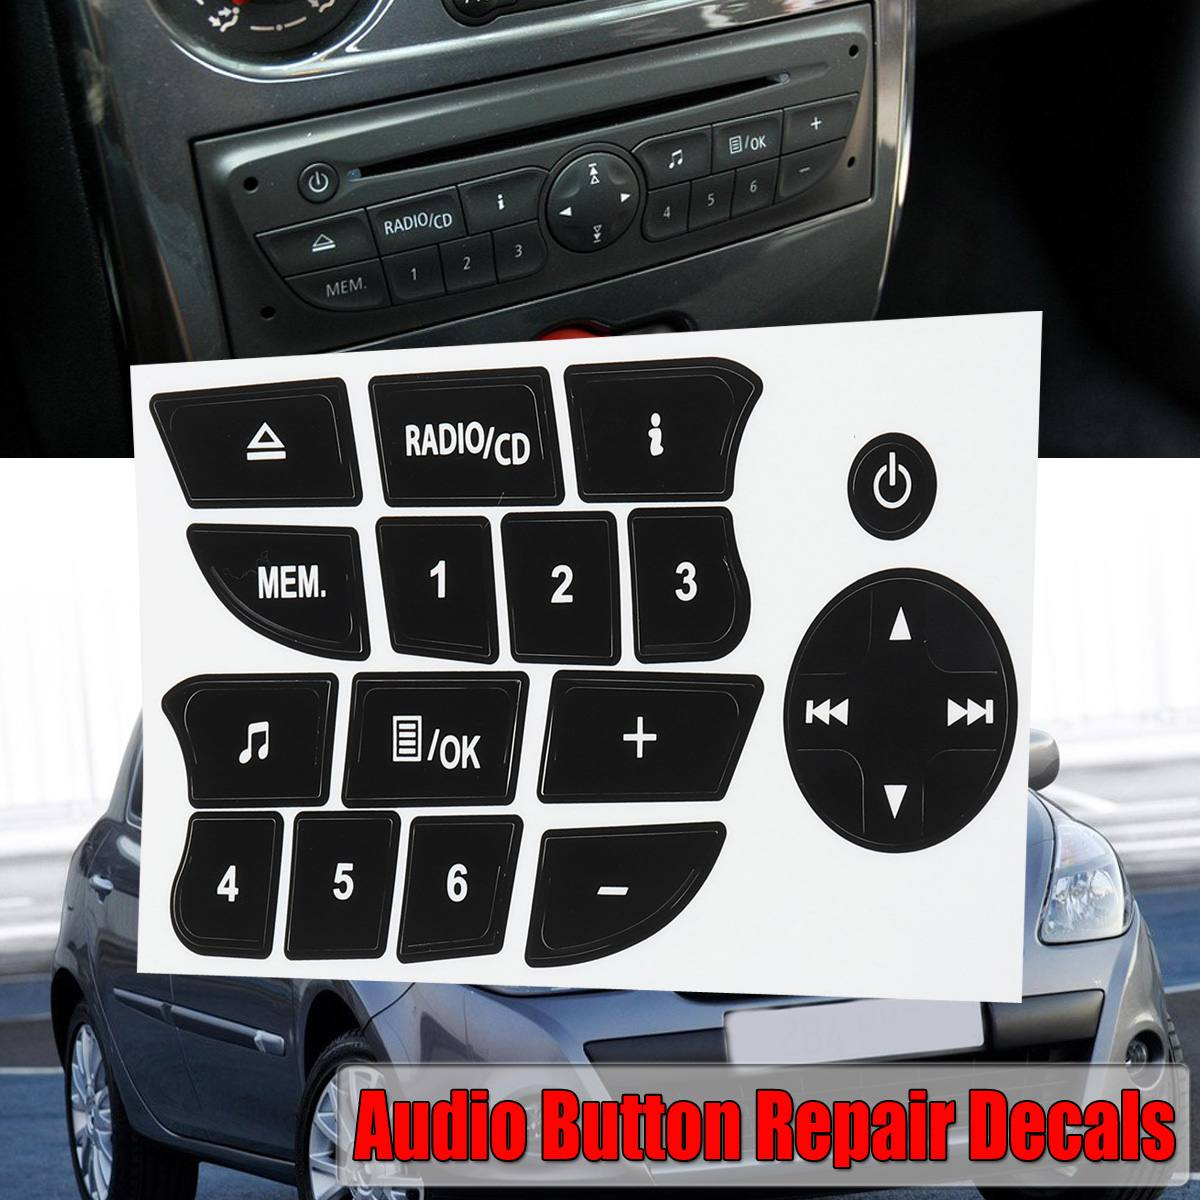 Car Button Repair Stickers CD Radio Audio Button Repair Decals Stickers For Twingo For Renault Clio And Megane 2009-2011